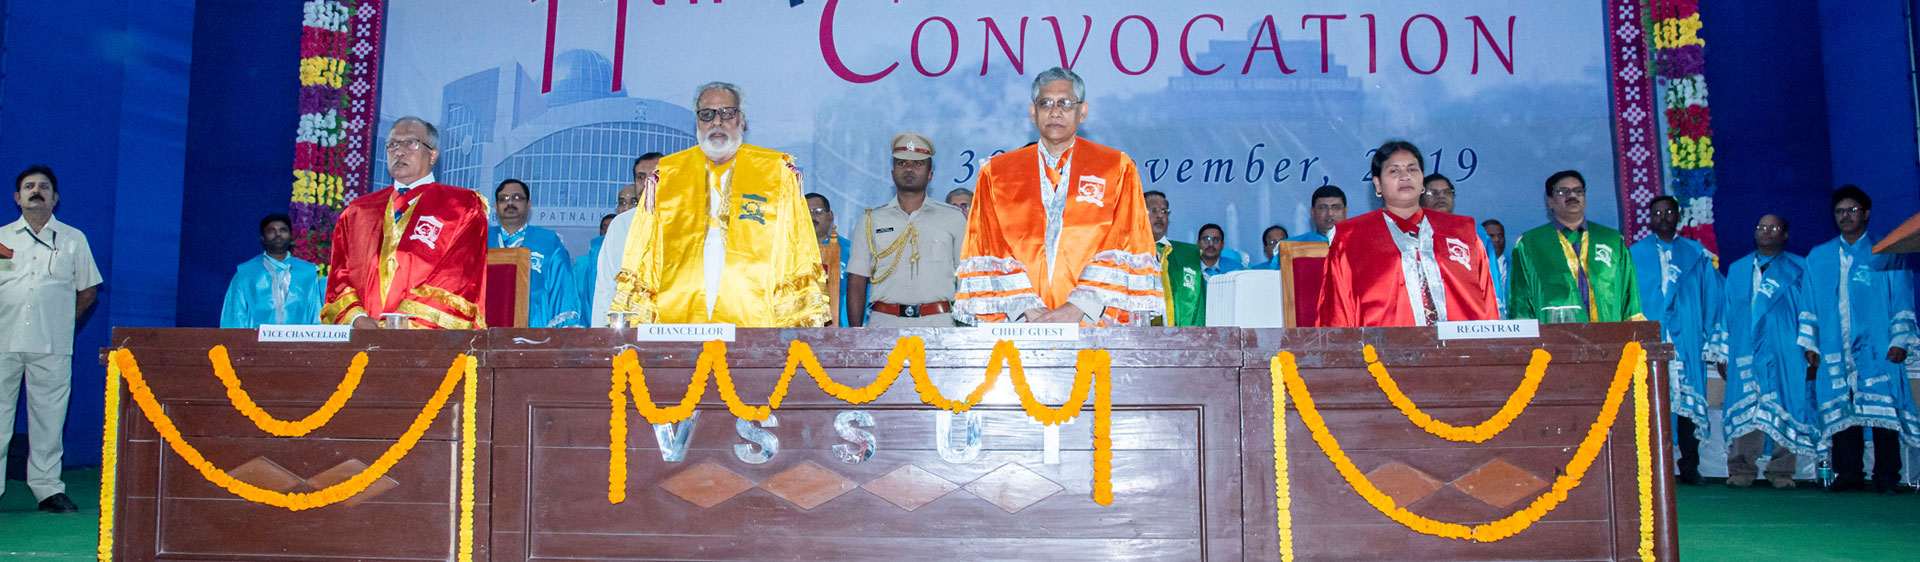 11th Convocation